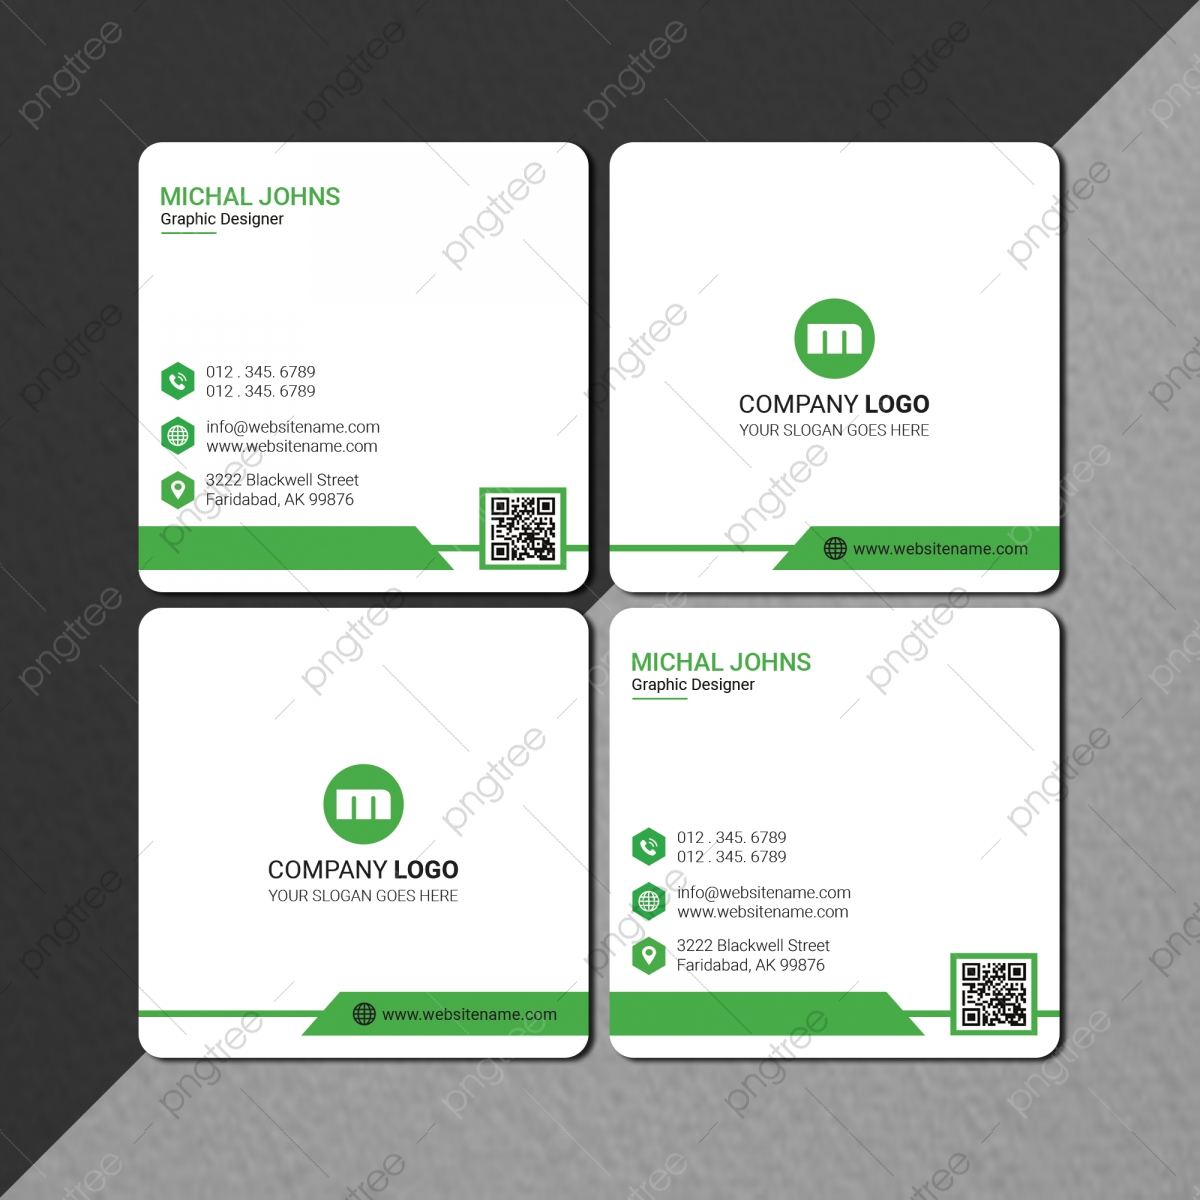 Creative Square Business Card With Qr Code Template Download on ...